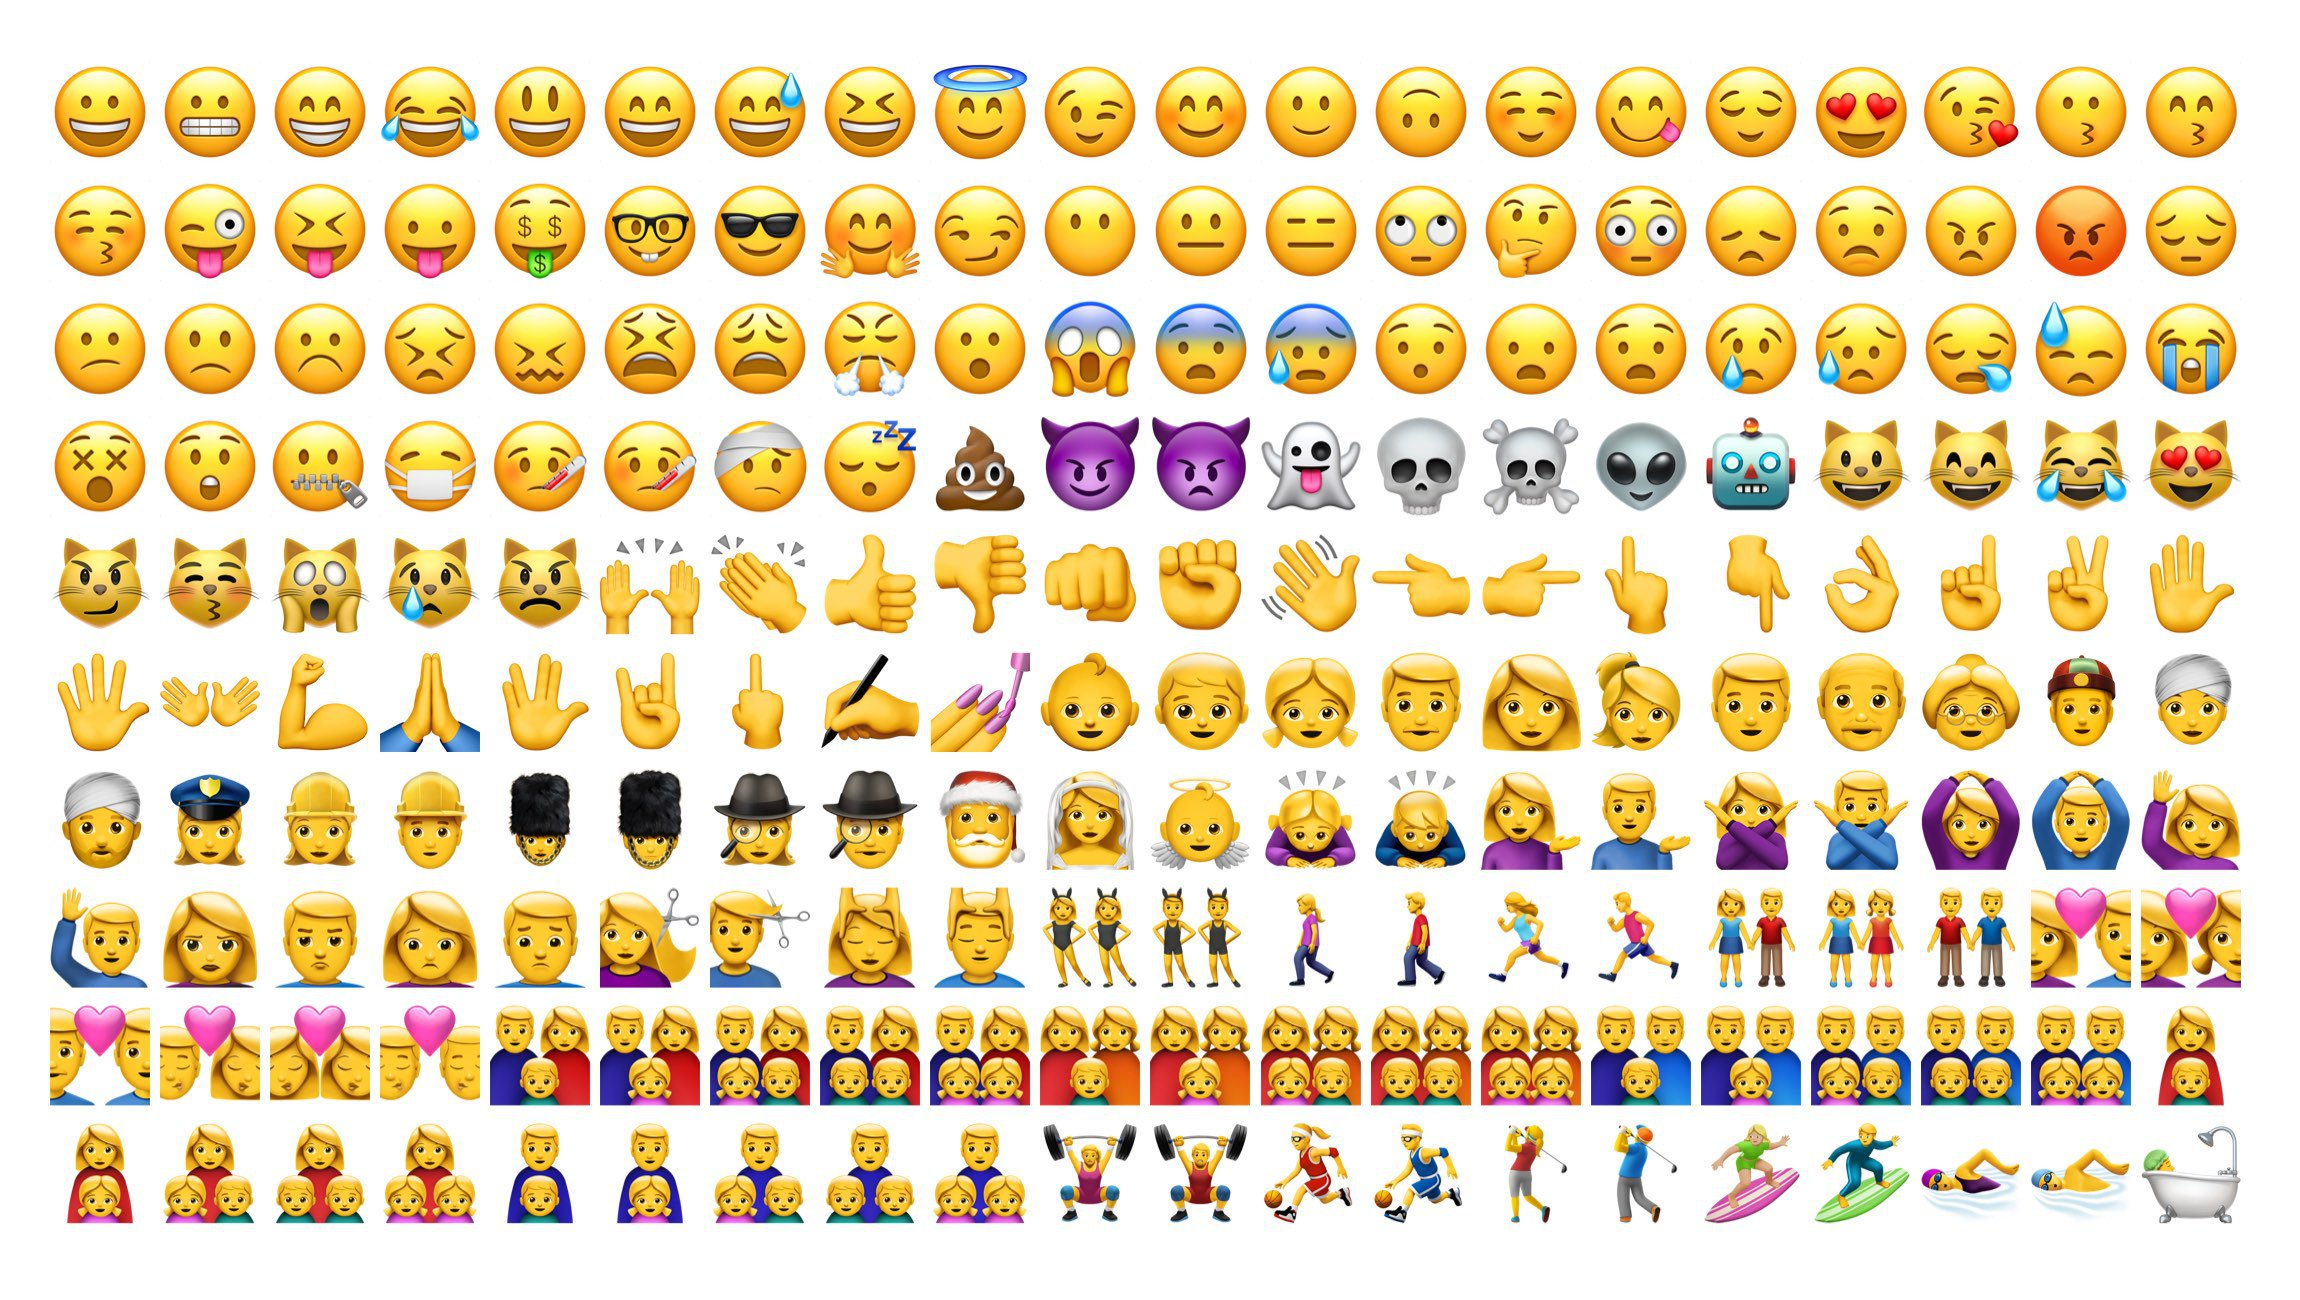 The Emoji Evolution: How Your Brand Can Use Emojis - The